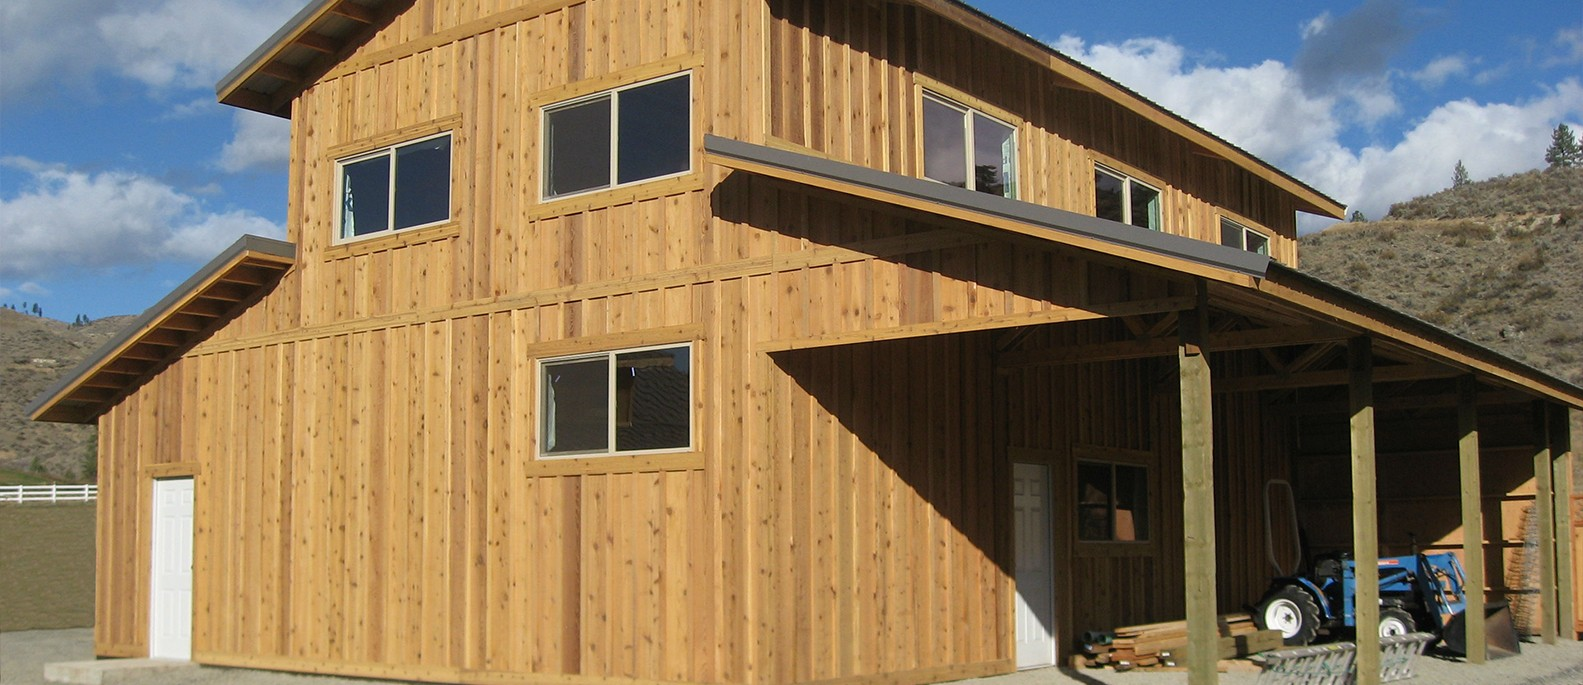 barn barns index com sturdi building packages sturdibuiltbarnsky photos built commercial